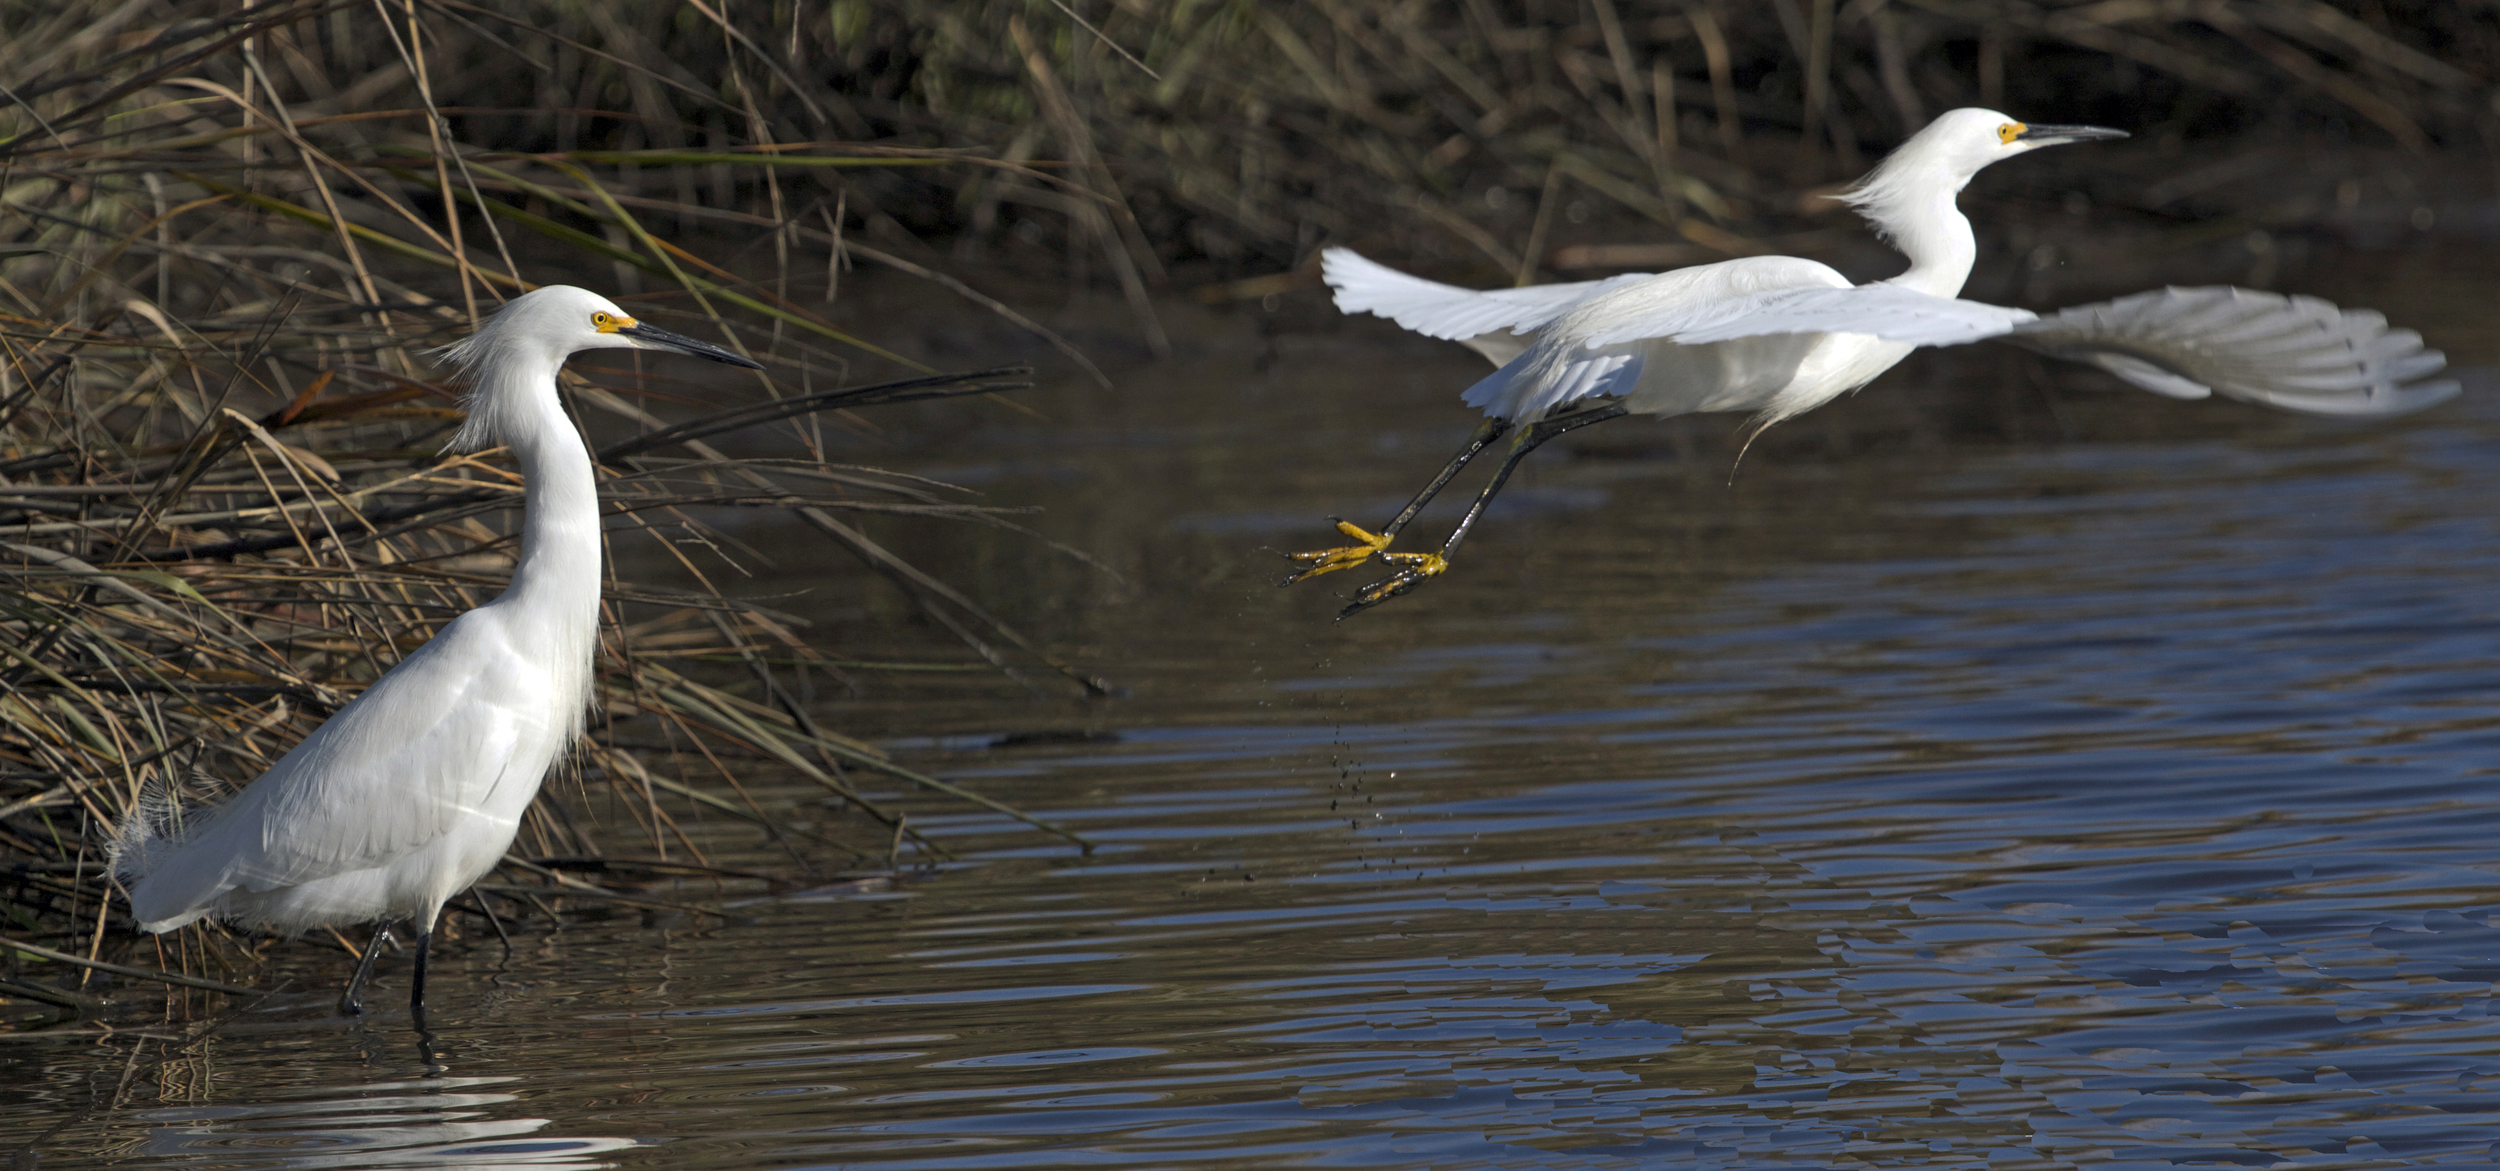 Well, like this Snowy Egret, time for me to fly! (time series takeoff)